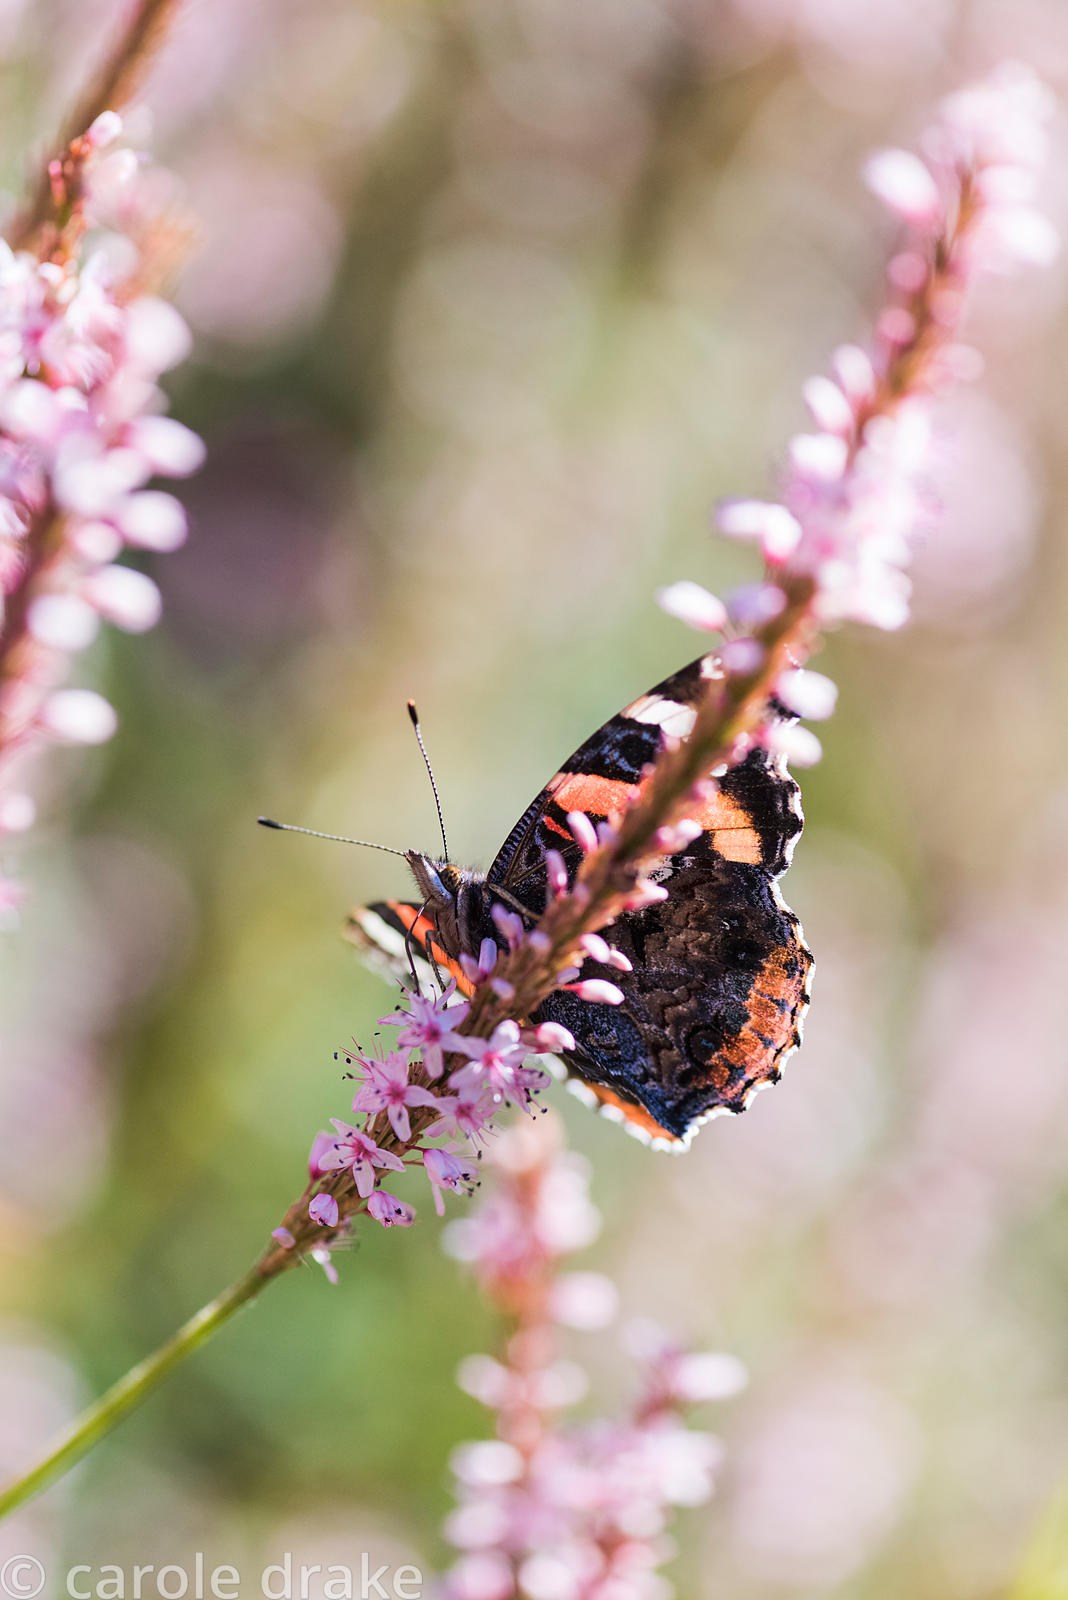 Red Admiral, Vanessa atalanta, on Persicaria amplexicaulis 'Rosea' in September. Cambo Gardens, Fife, Scotland